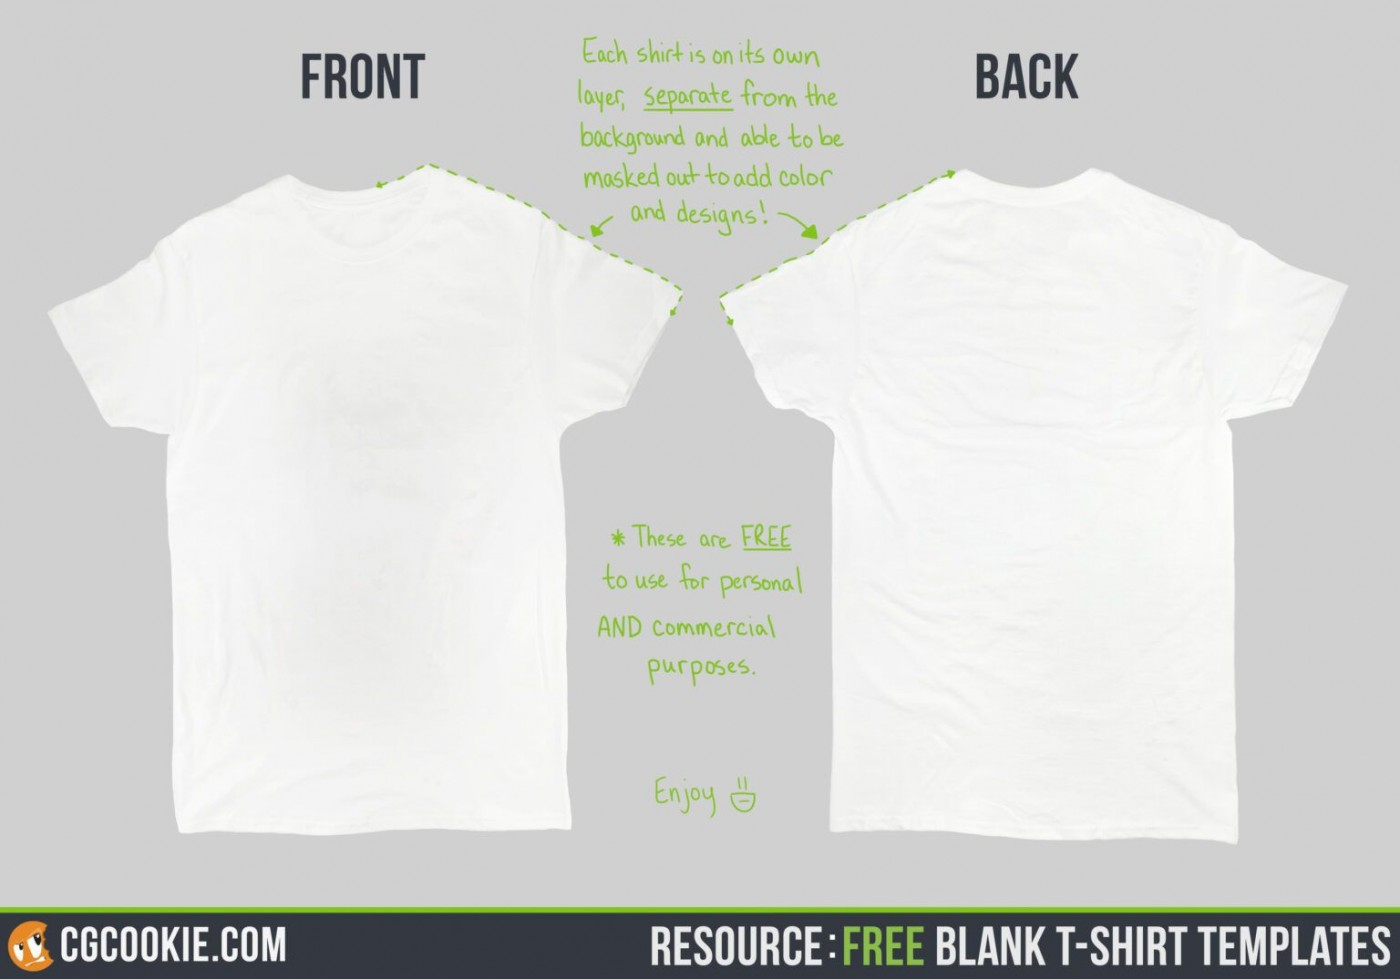 000 Outstanding T Shirt Template Free High Resolution  Design Psd Download Illustrator1400